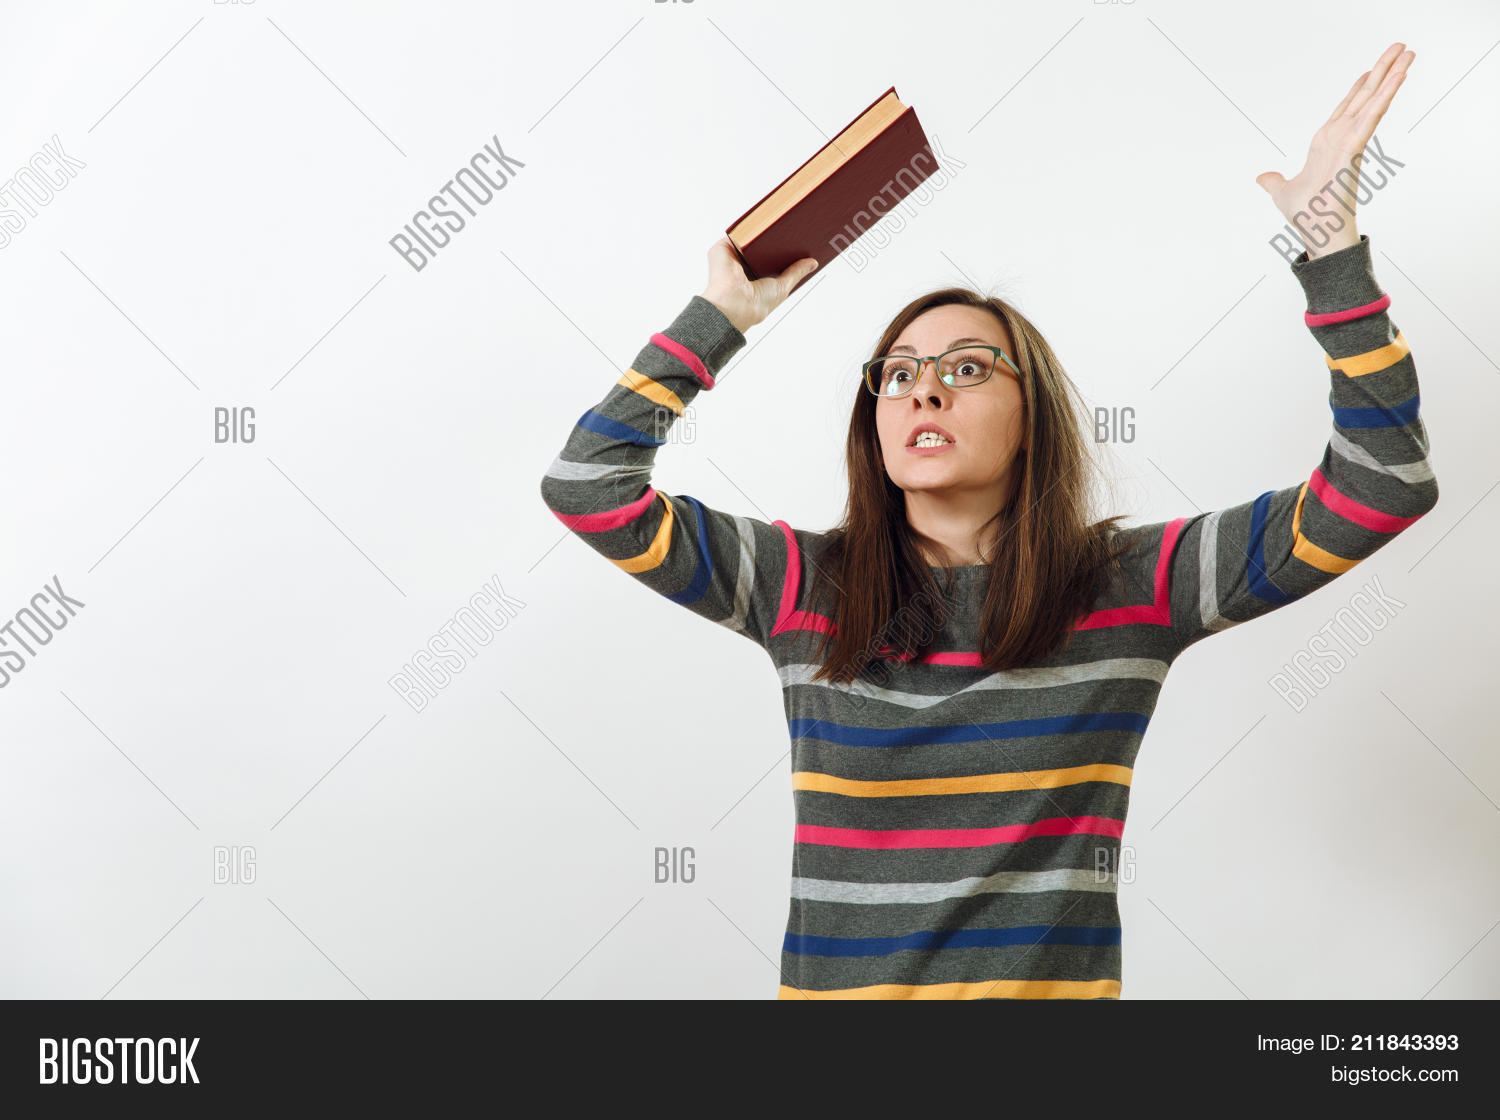 4aa531293569 ... woman in glasses for sight dressed in casual dark grey longsleeve with  colorful stripes standing with book on a white background. Reading and  studying ...